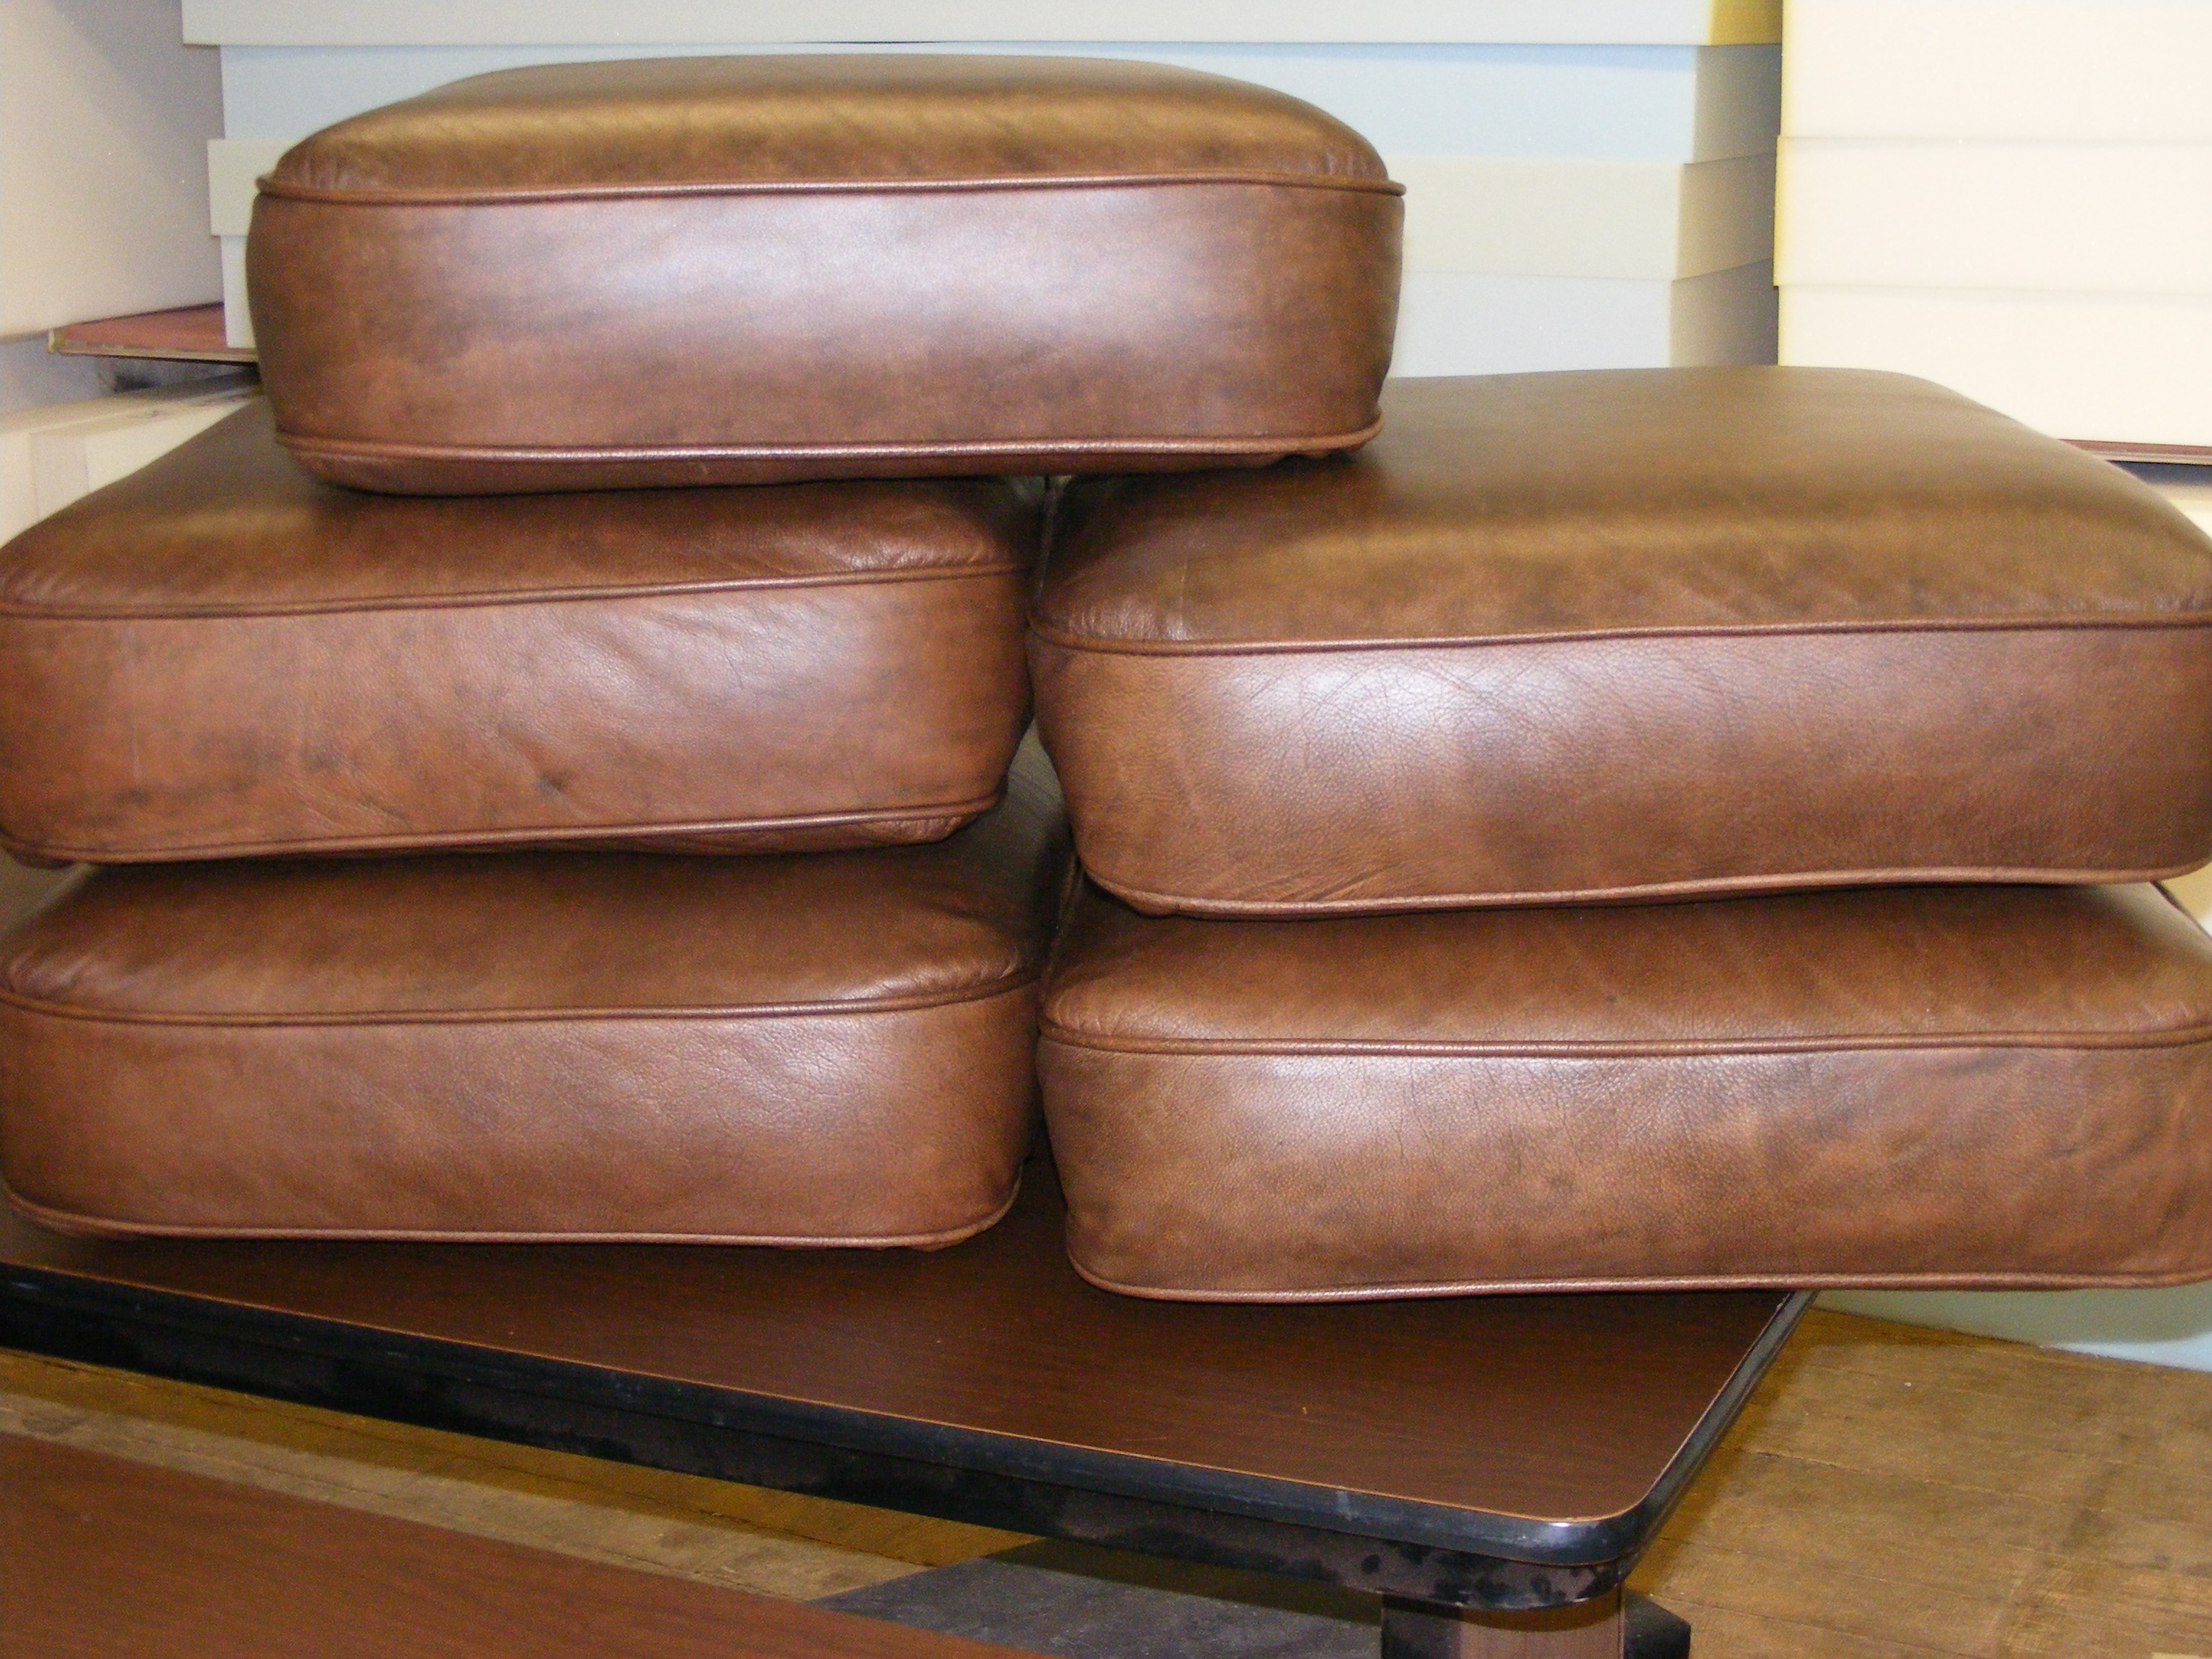 Sofa Stuffing | Recushioning Sofa Cushions | Restuffing Couch Cushions